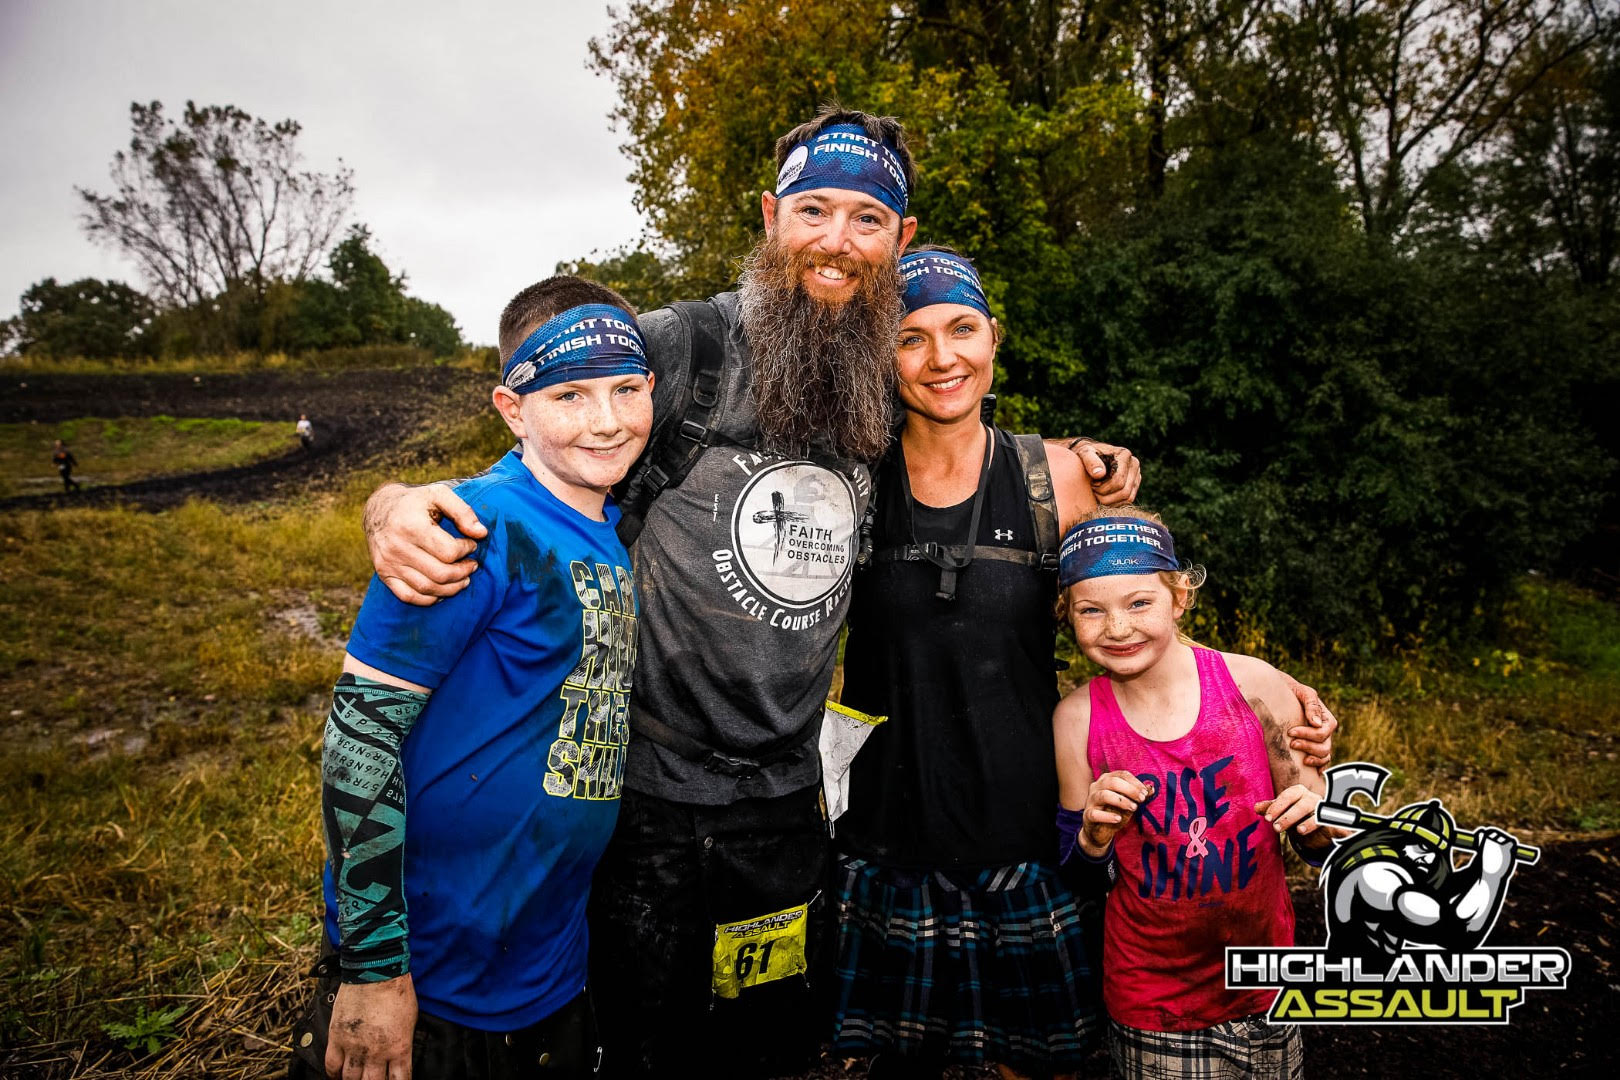 Race Ready Obstacles founders and family at Highlander Assault OCR